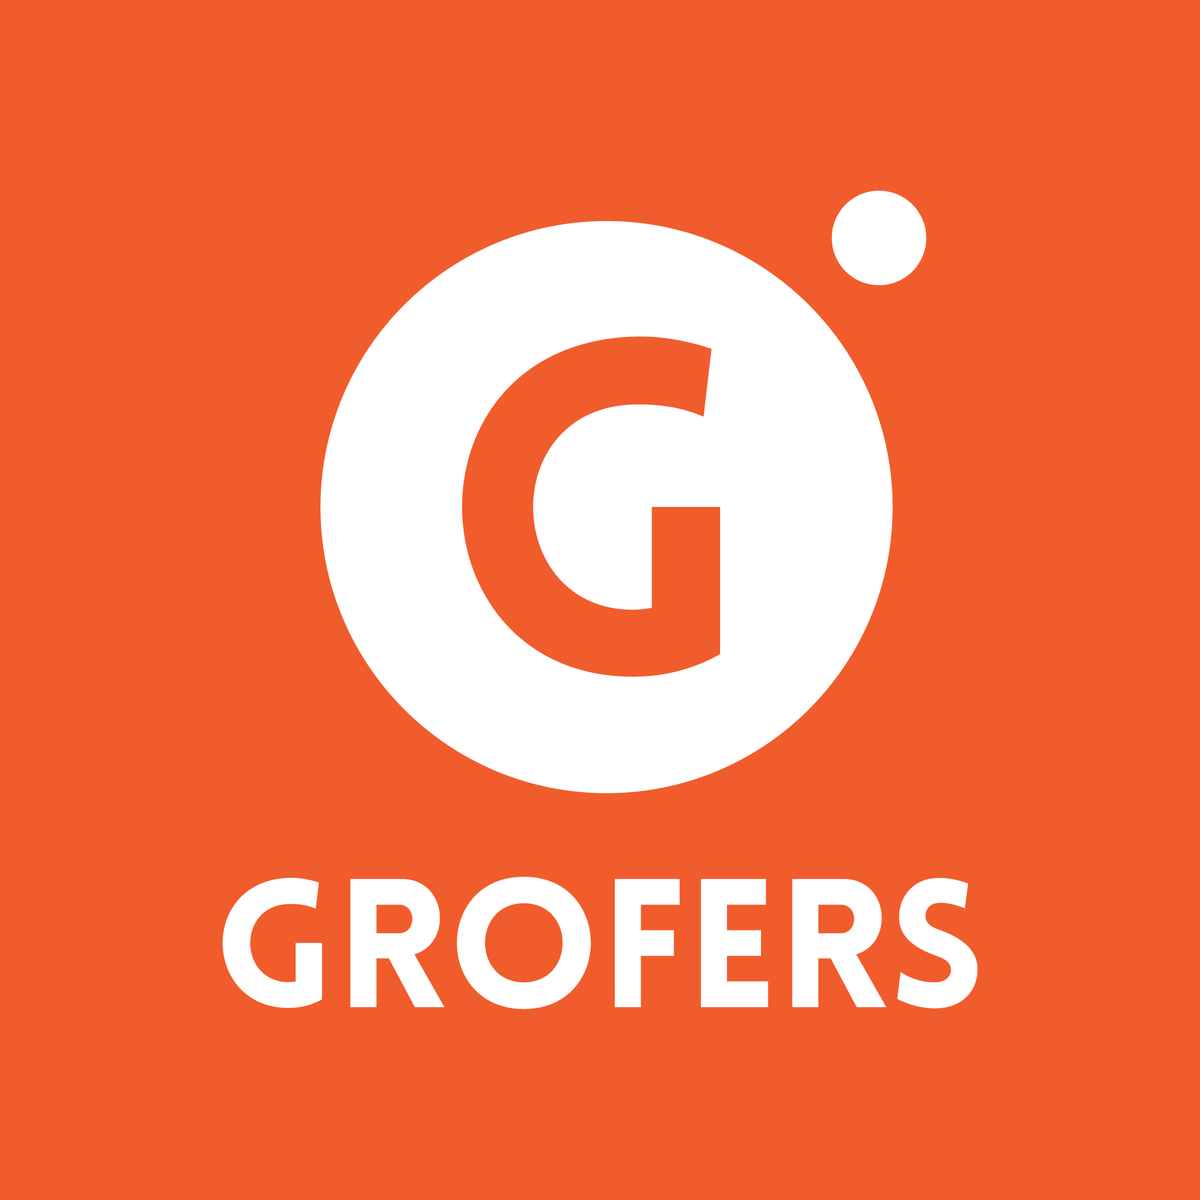 Where Order Groceries Online